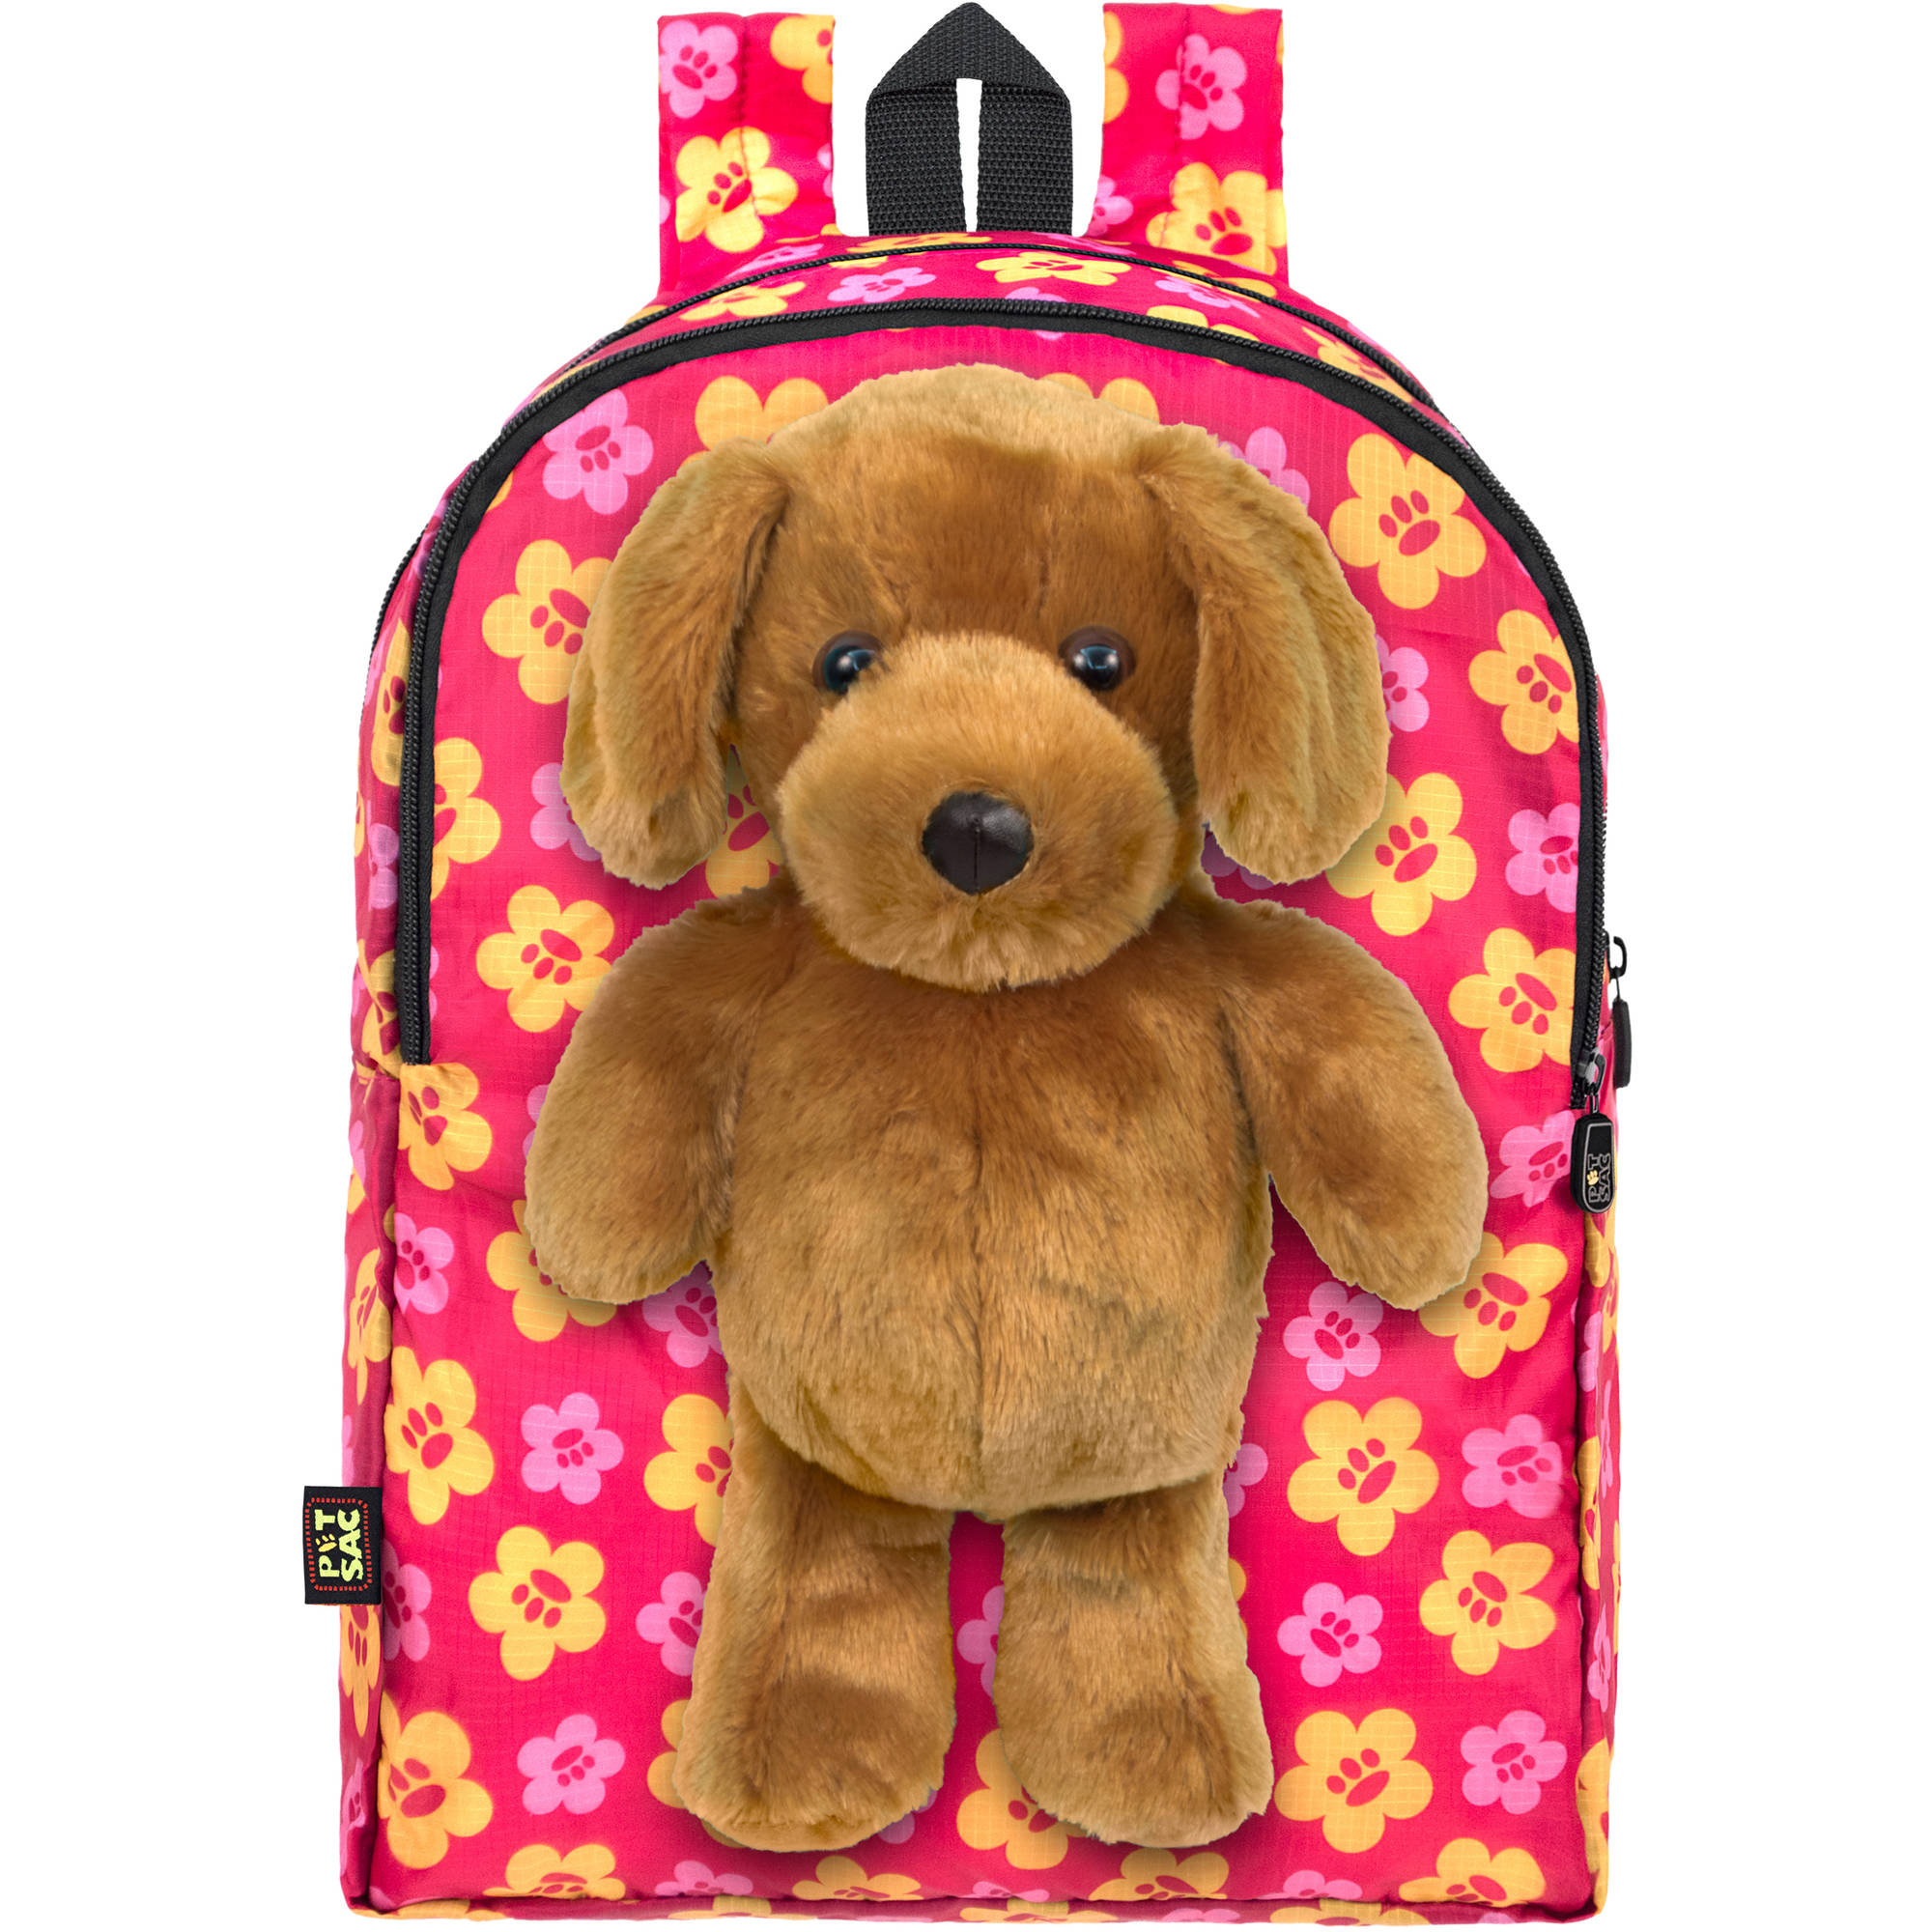 PetSac Buddy the Dog with Pink Floral Printed Backpack - Walmart.com